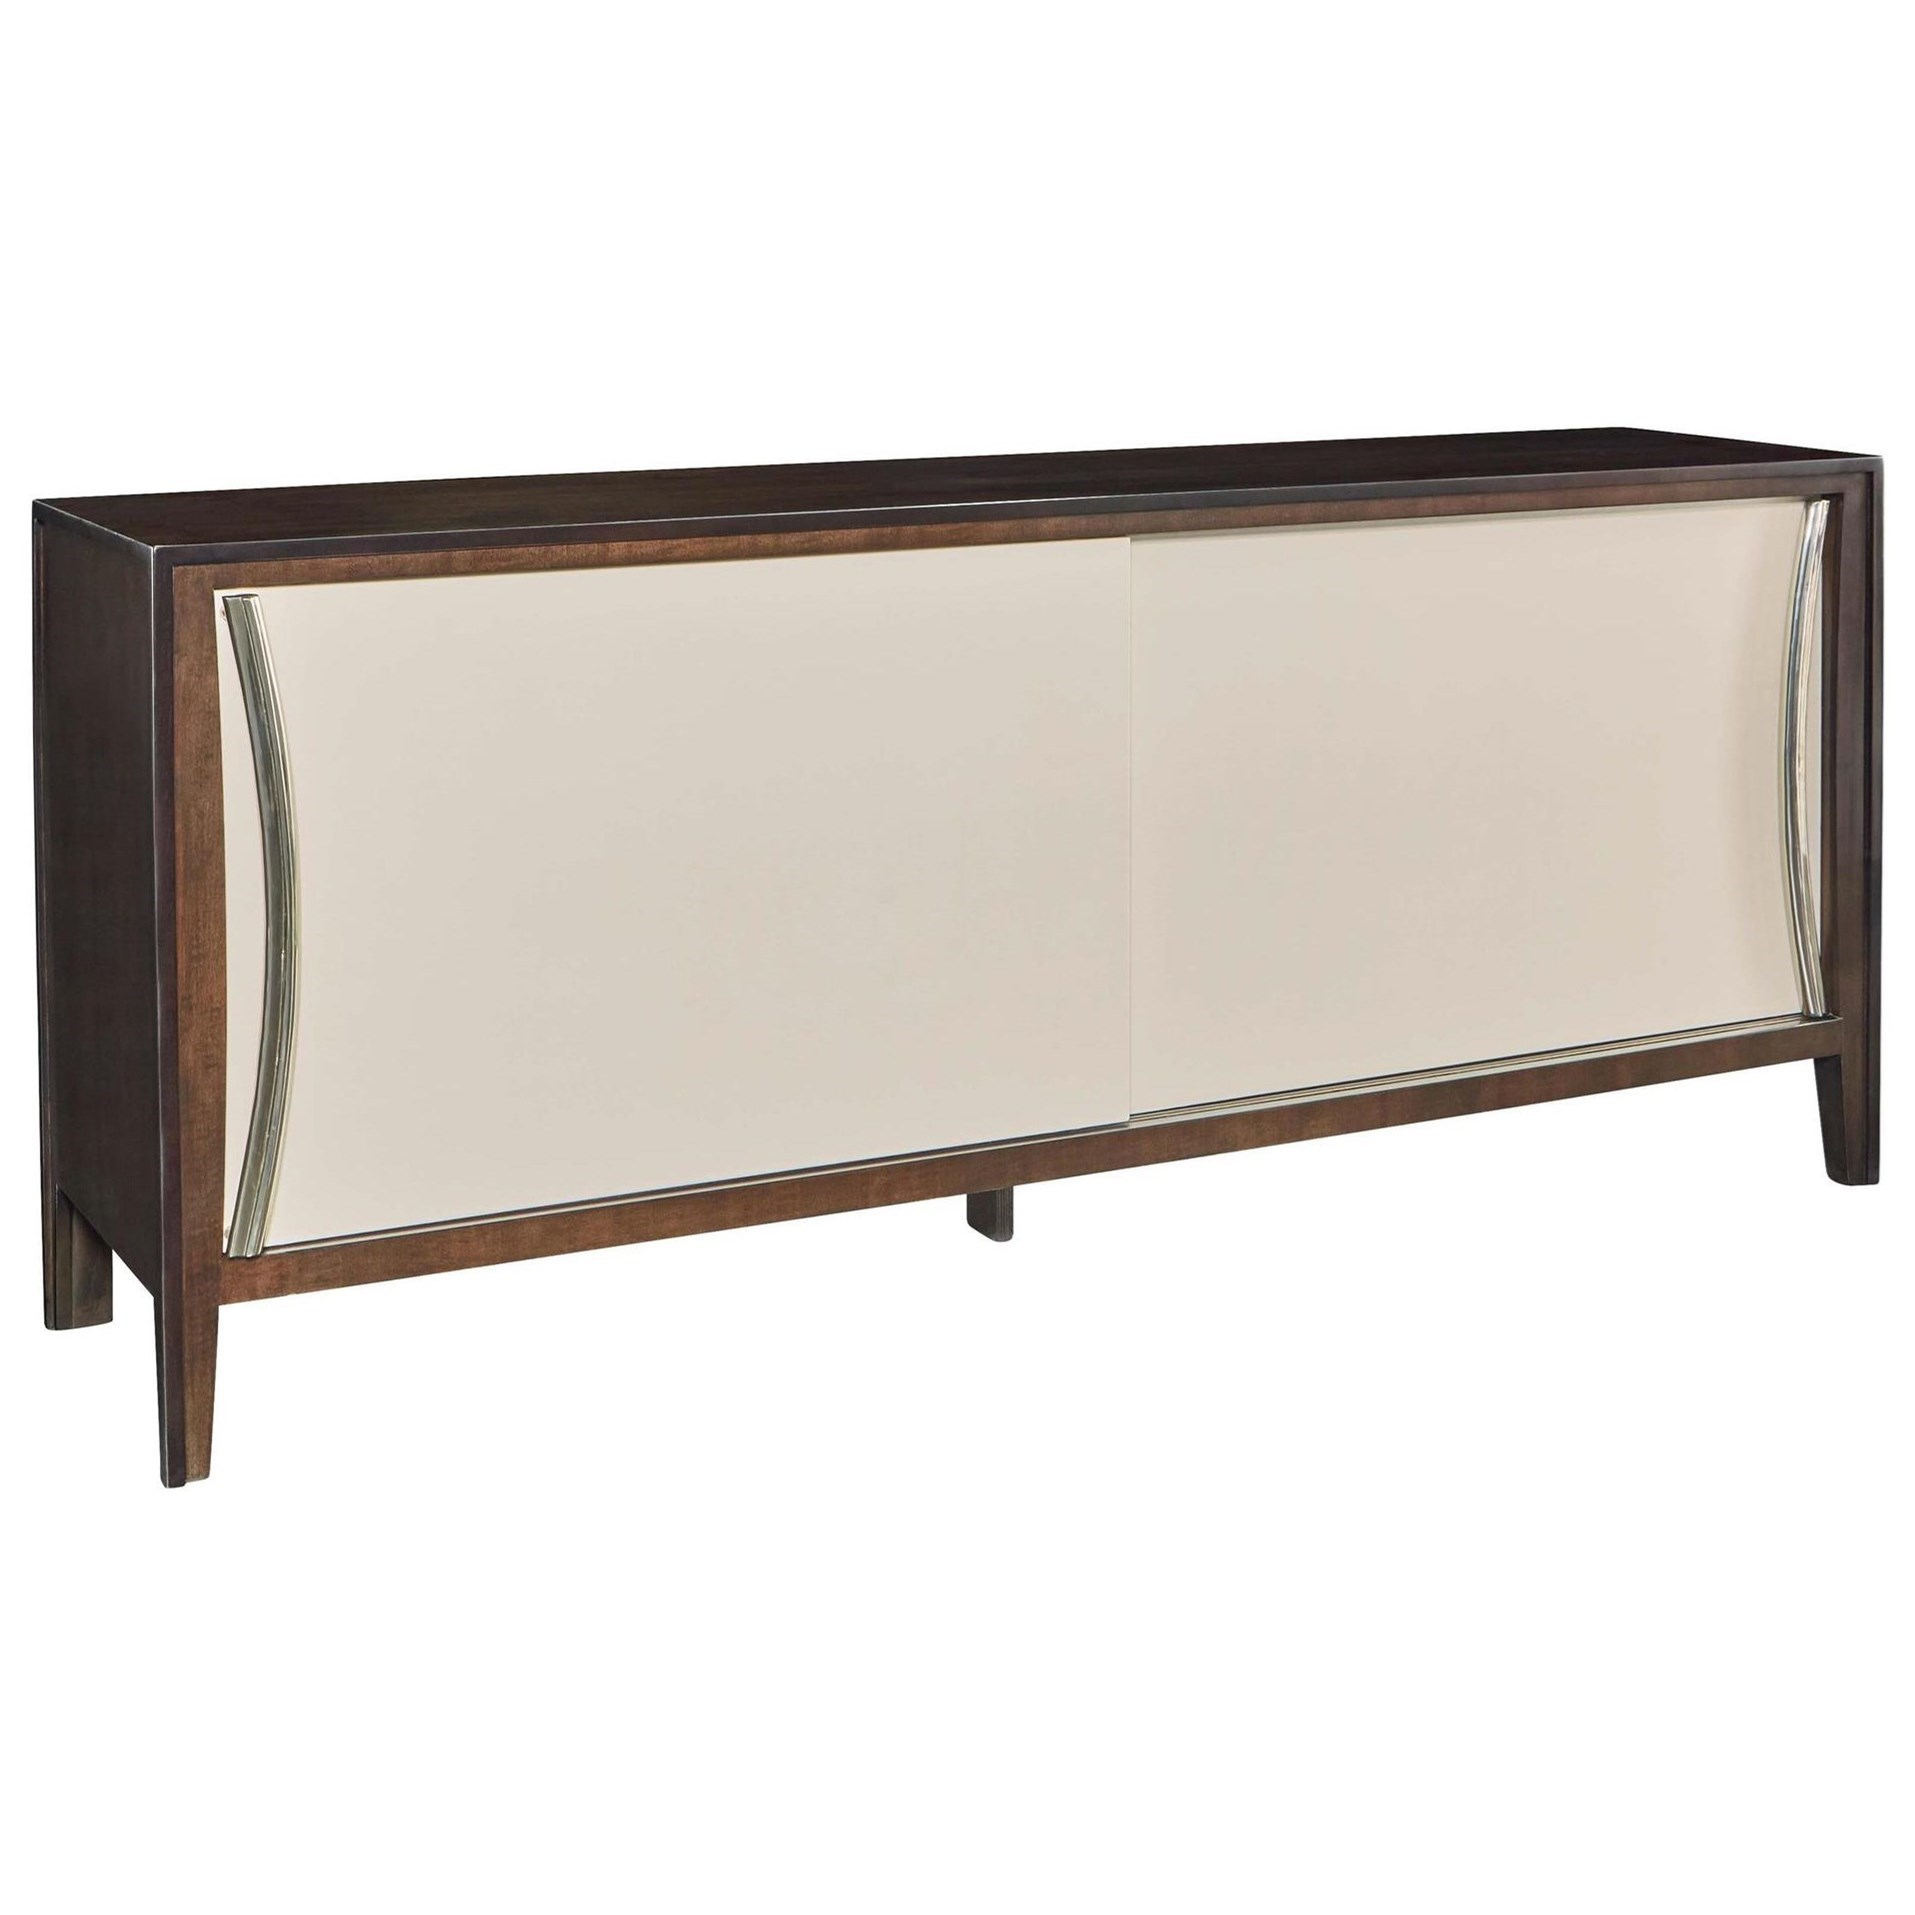 Fine Furniture Design DecoLa Credence Credenza ...